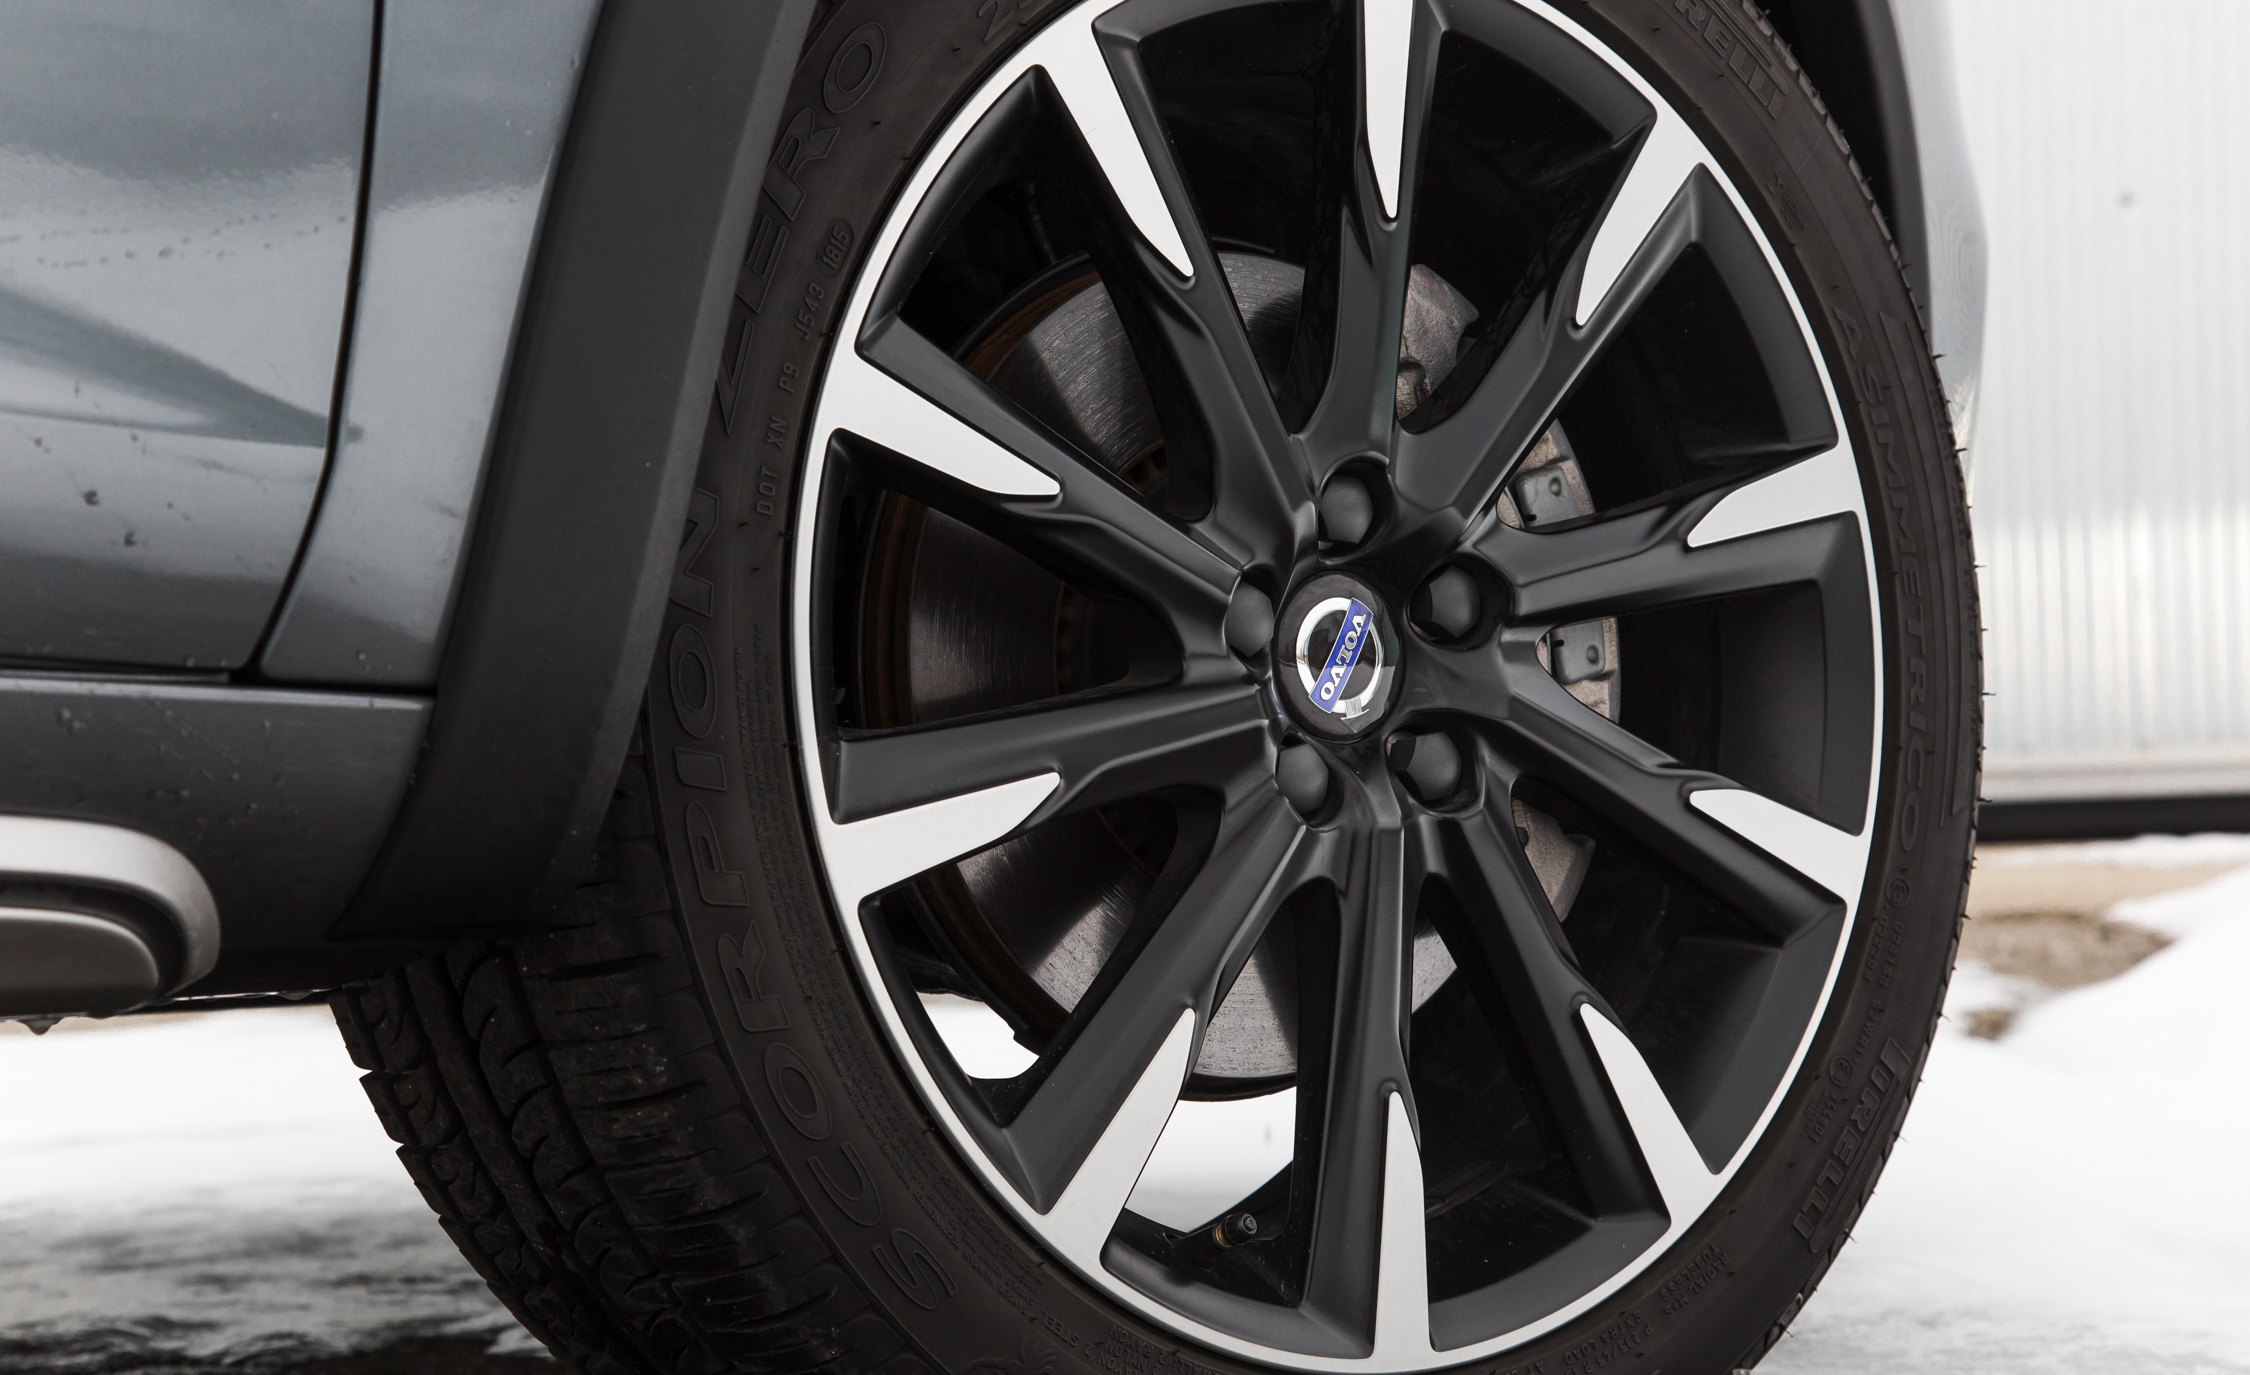 2016 Volvo S60 Cross Country Exterior Wheel (Photo 10 of 21)